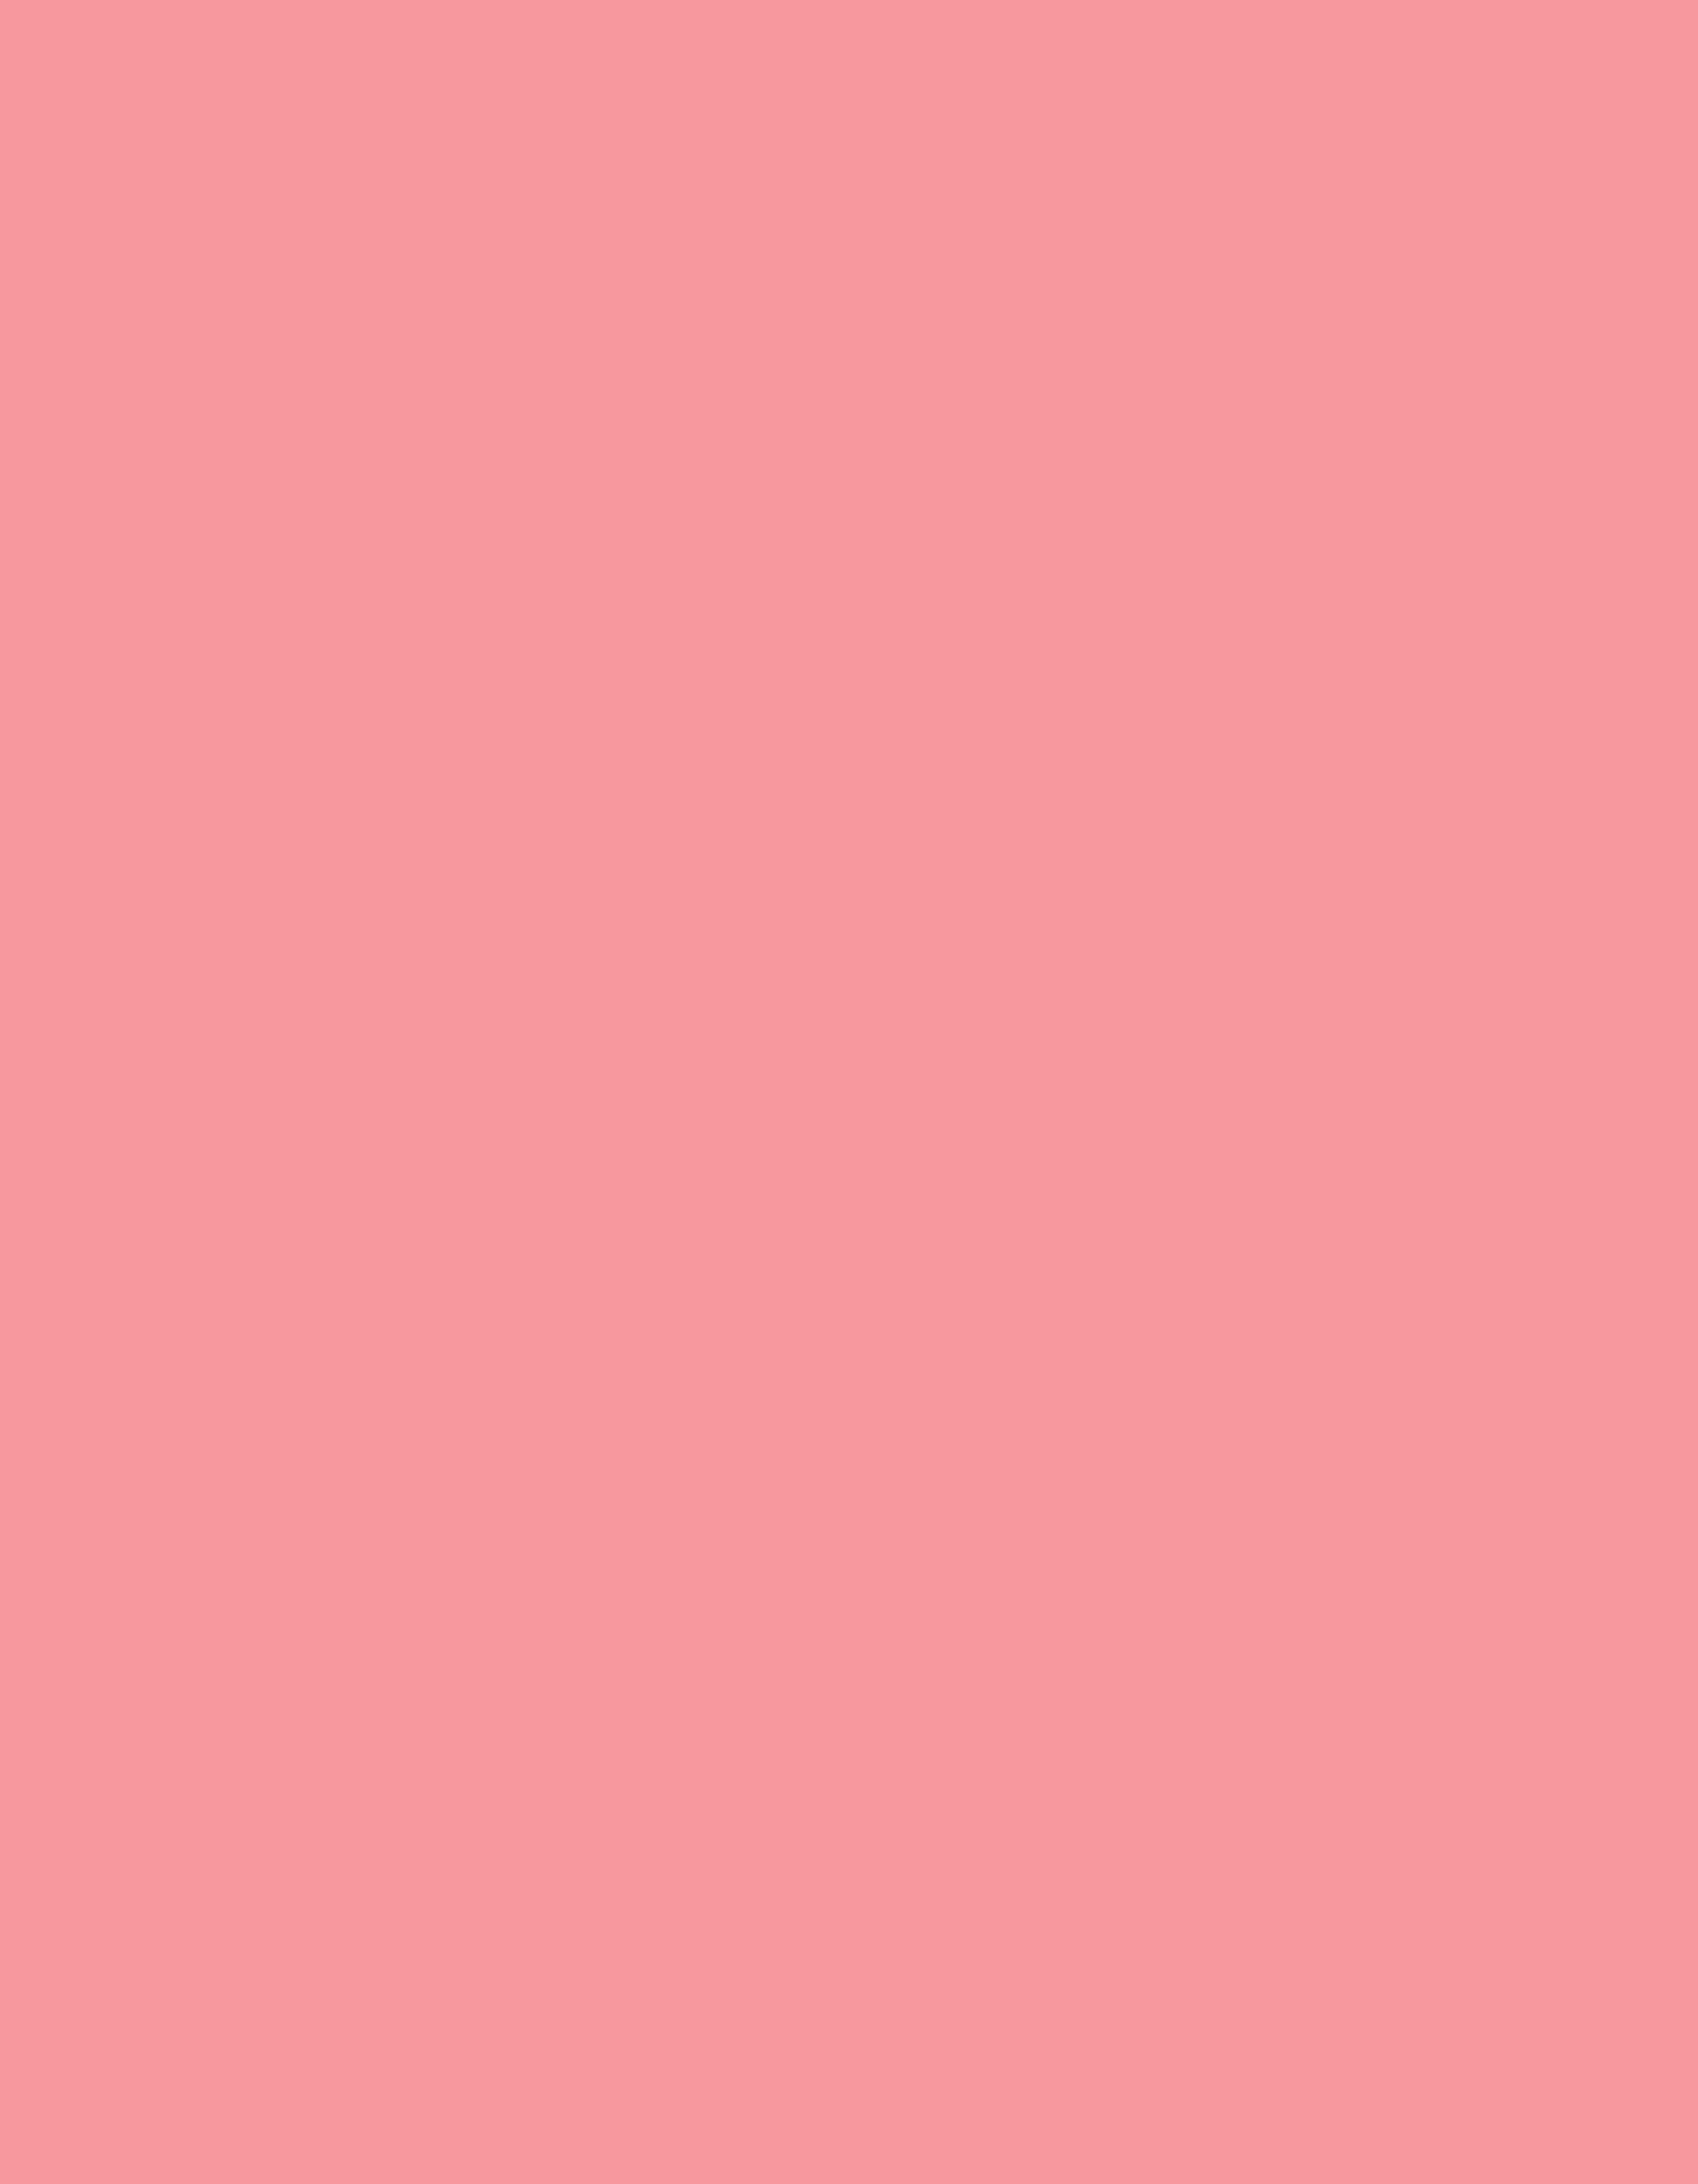 dialated-nude-pink-pics